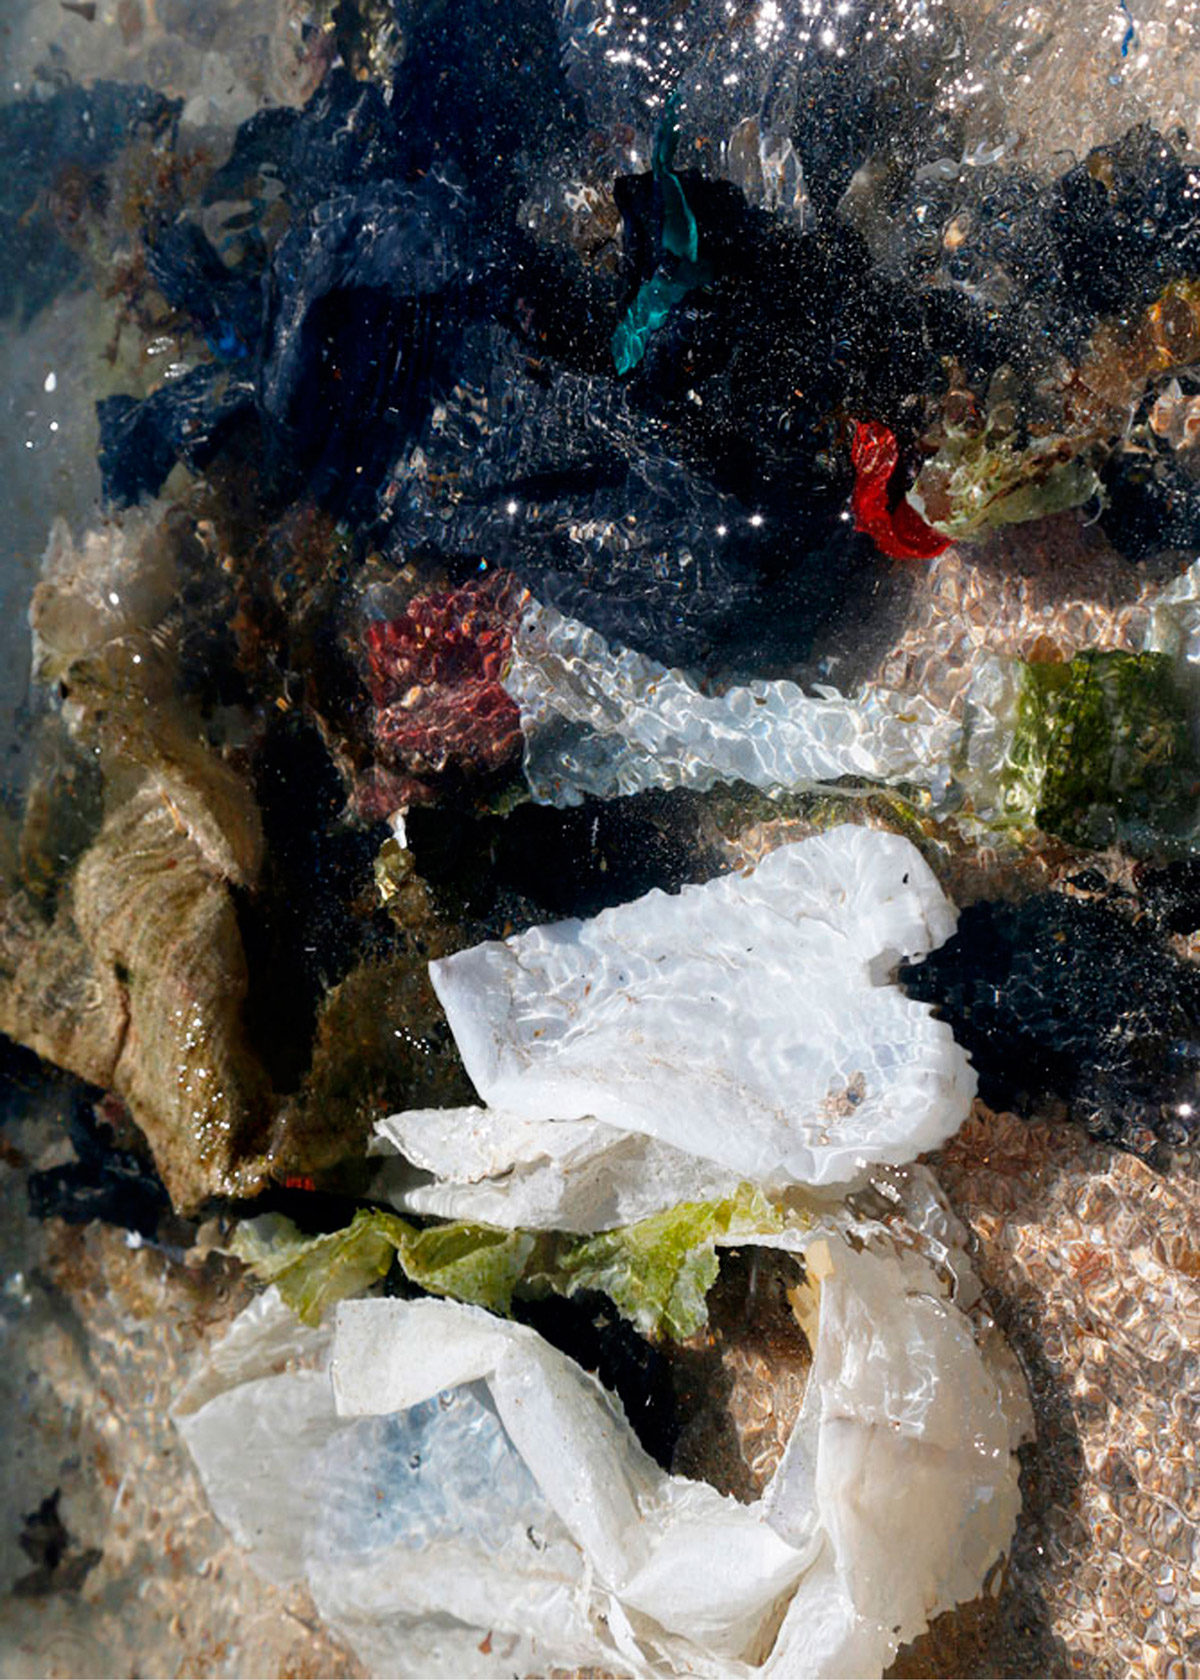 Trash submerged in the water.